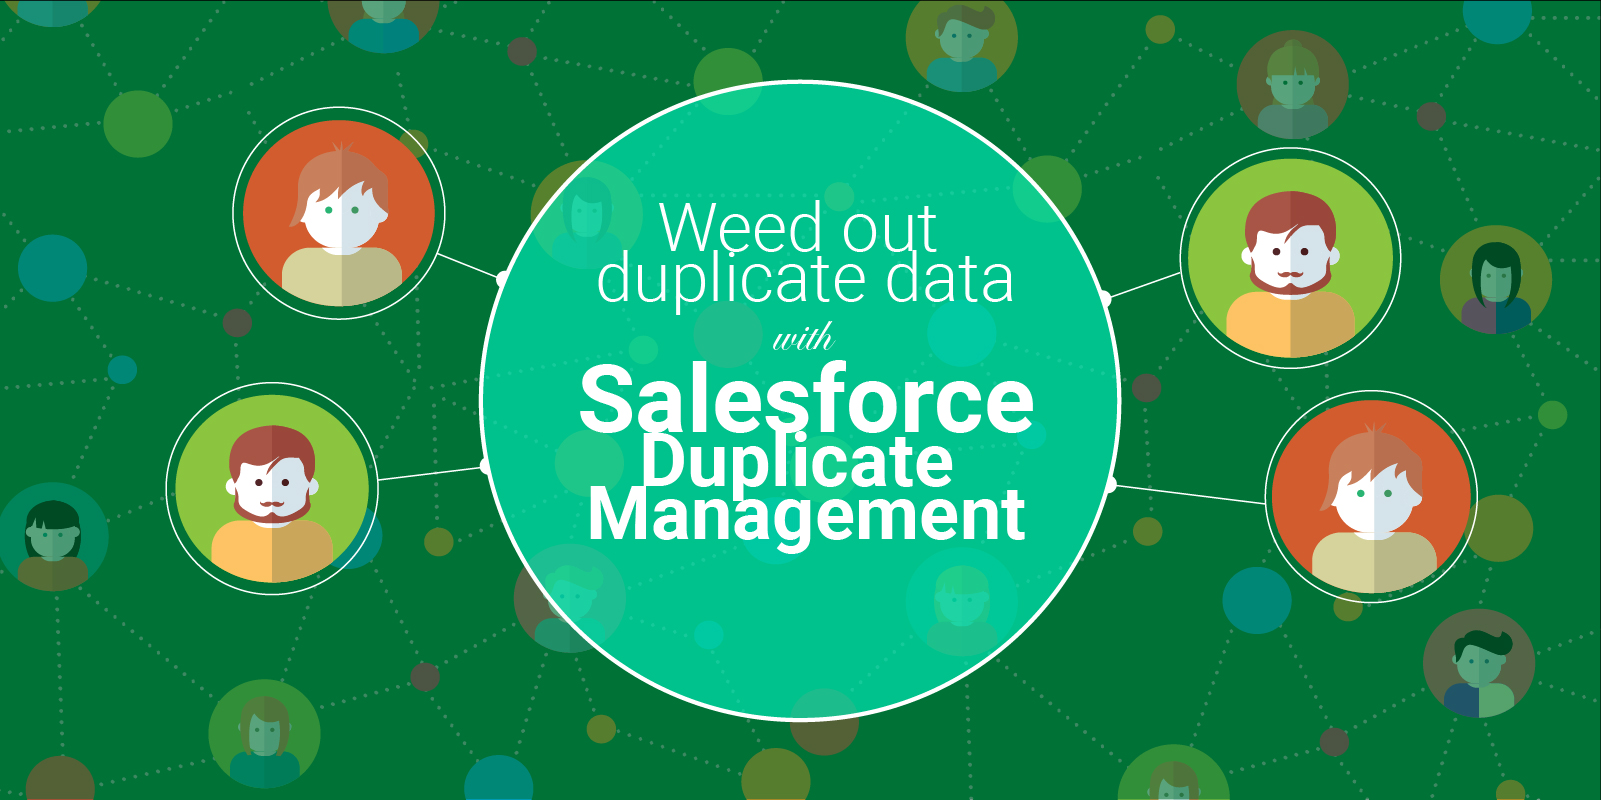 Salesforce Duplicate Management   The key to cut down the roots of duplicity